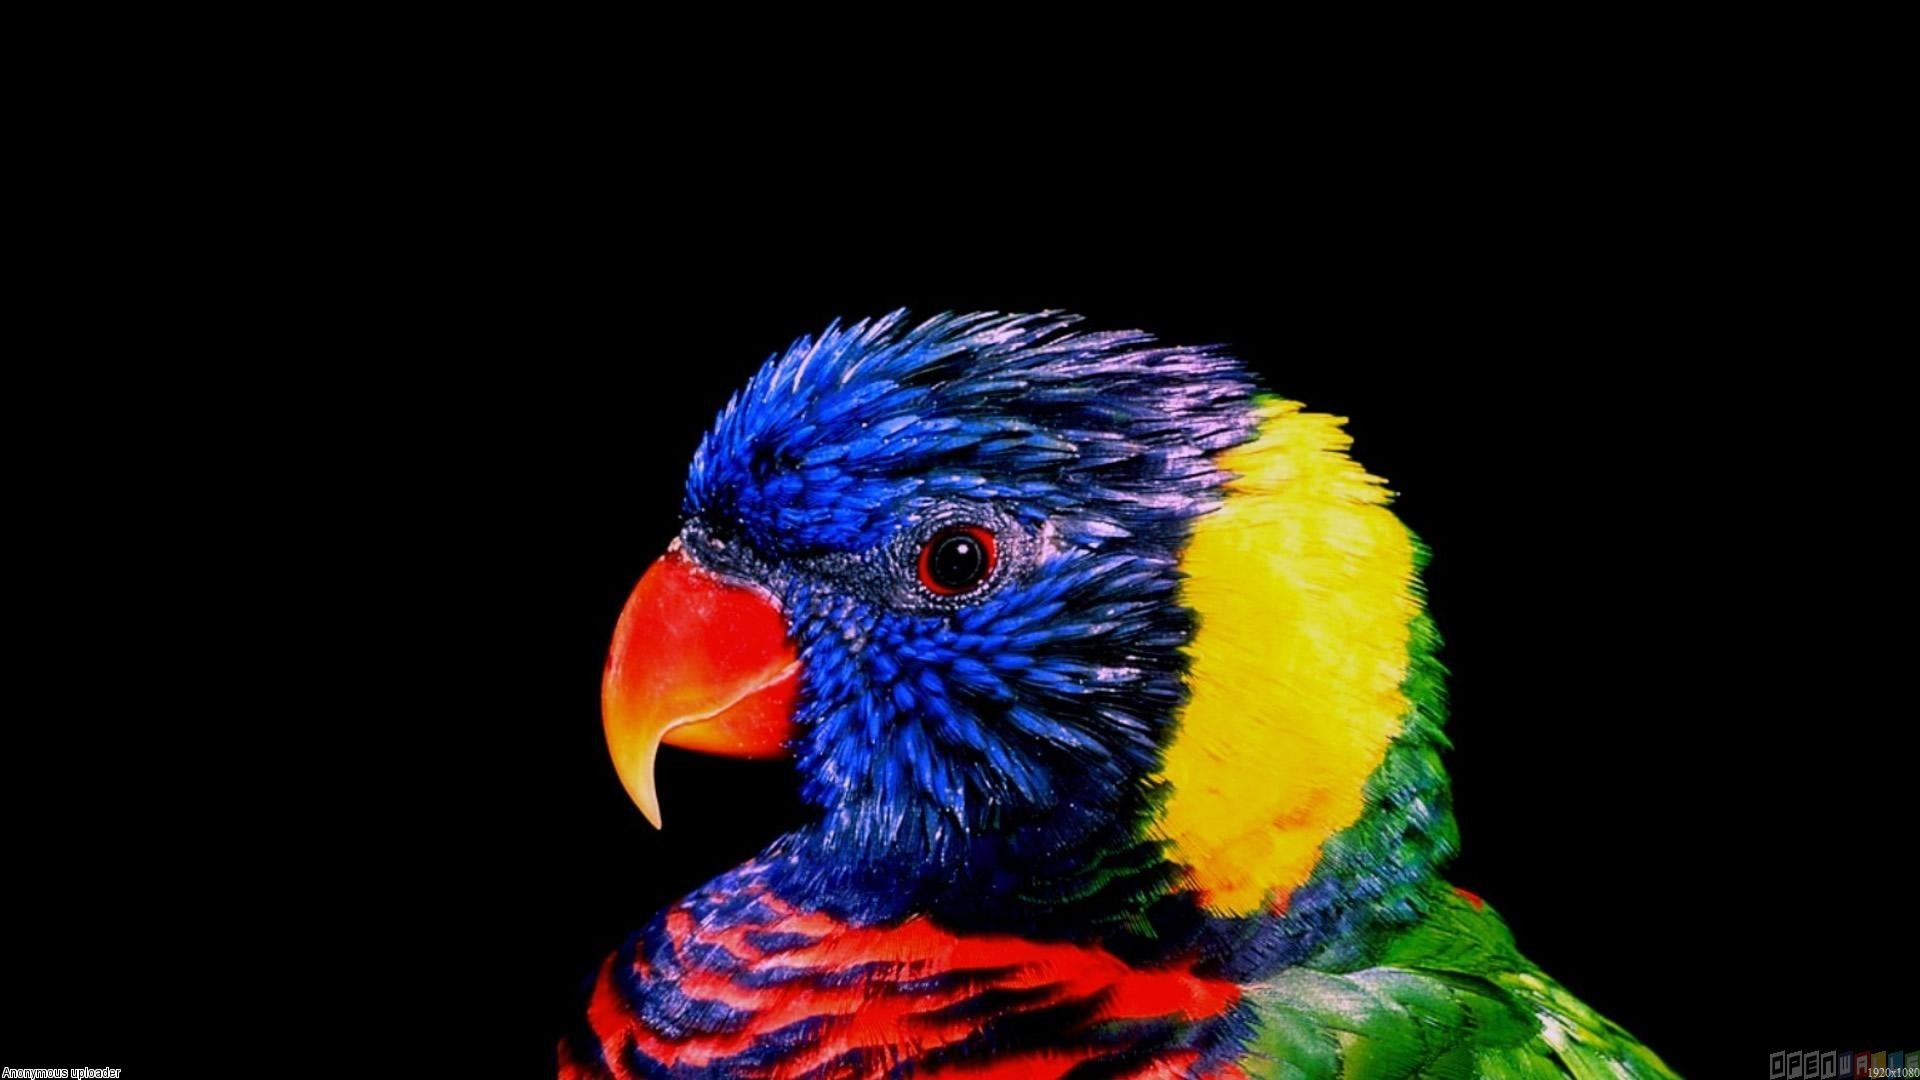 Very colorful parrot wallpaper 4444   Open Walls 1920x1080